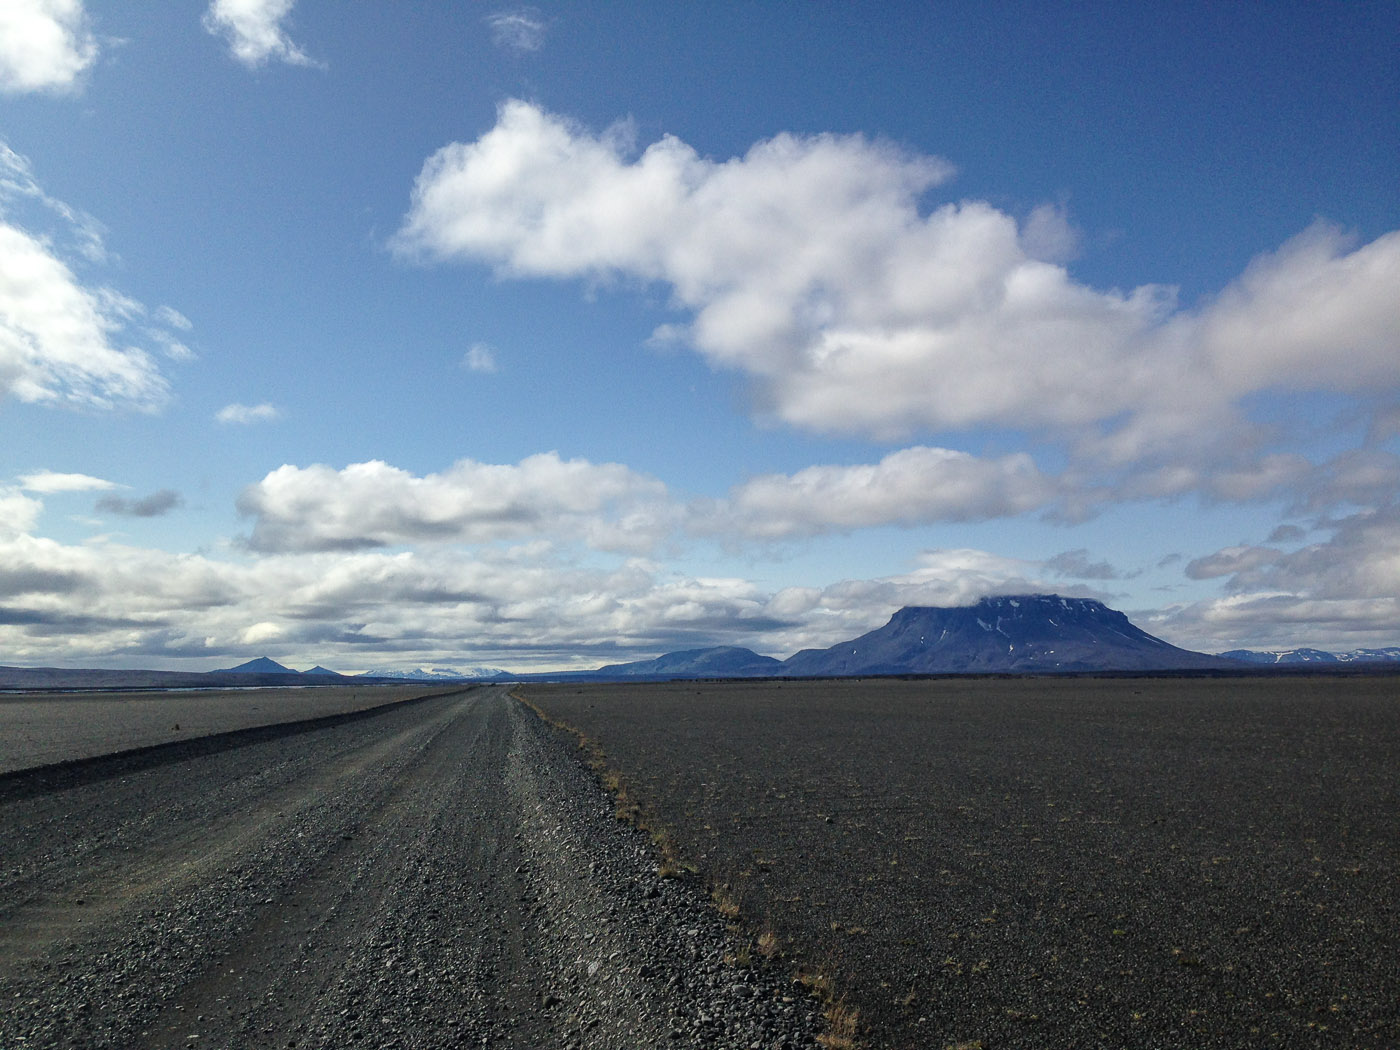 Northern Iceland - On the way to Askja. On vacation. - F88 - view in southern direction, and mountain Herðubreið. (24 July 2014)